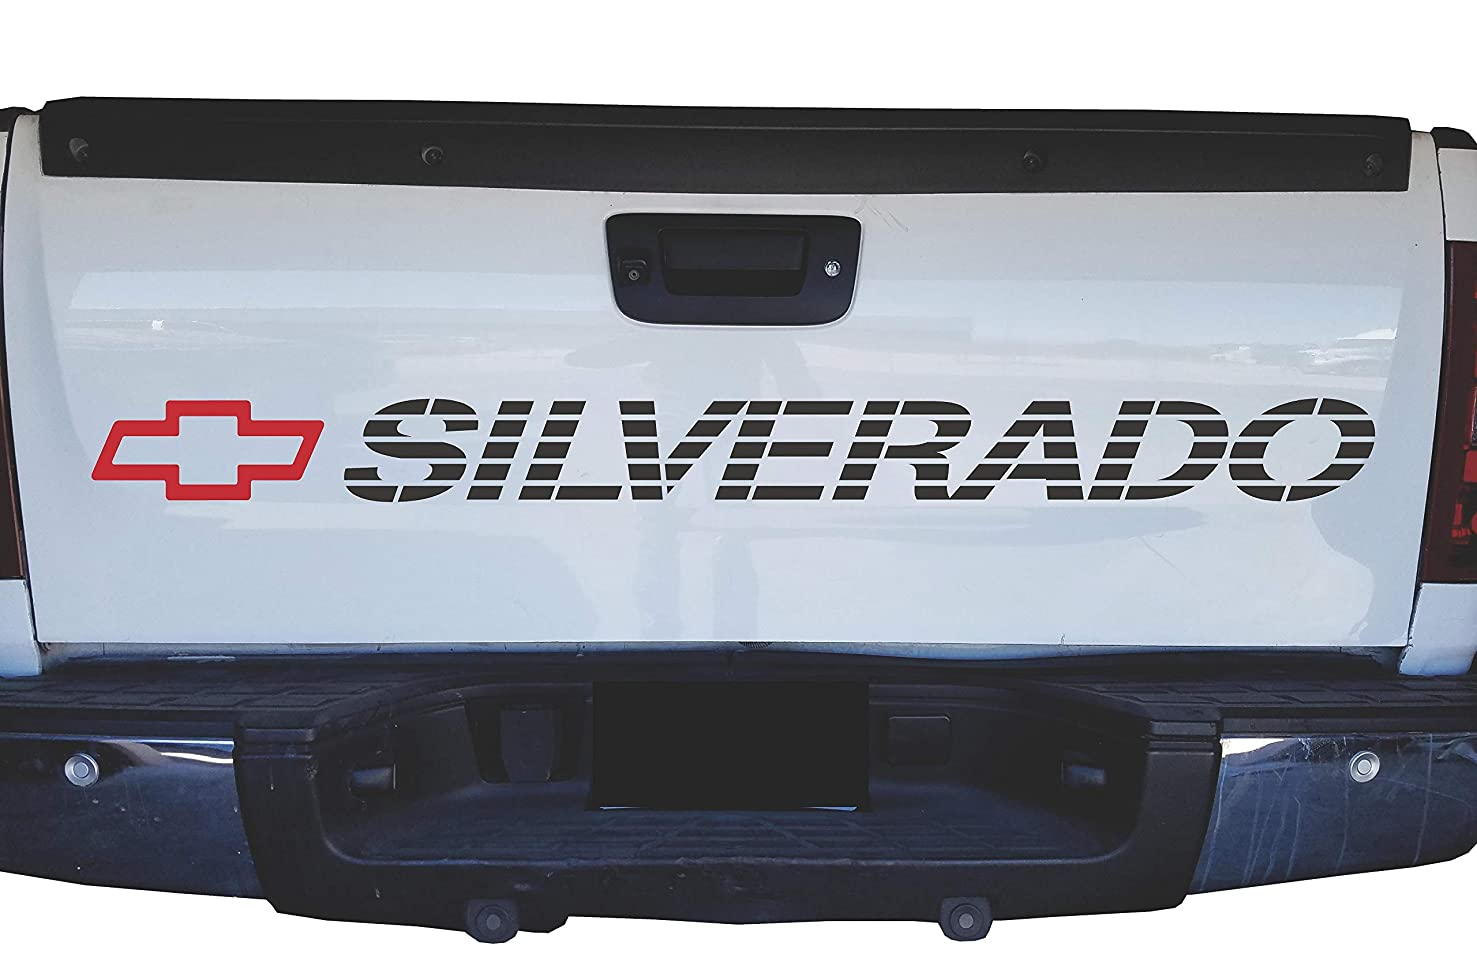 Chevrolet Silverado Bed Sticker Tailgate Decal Chevy Graphics Vinyl Lettering